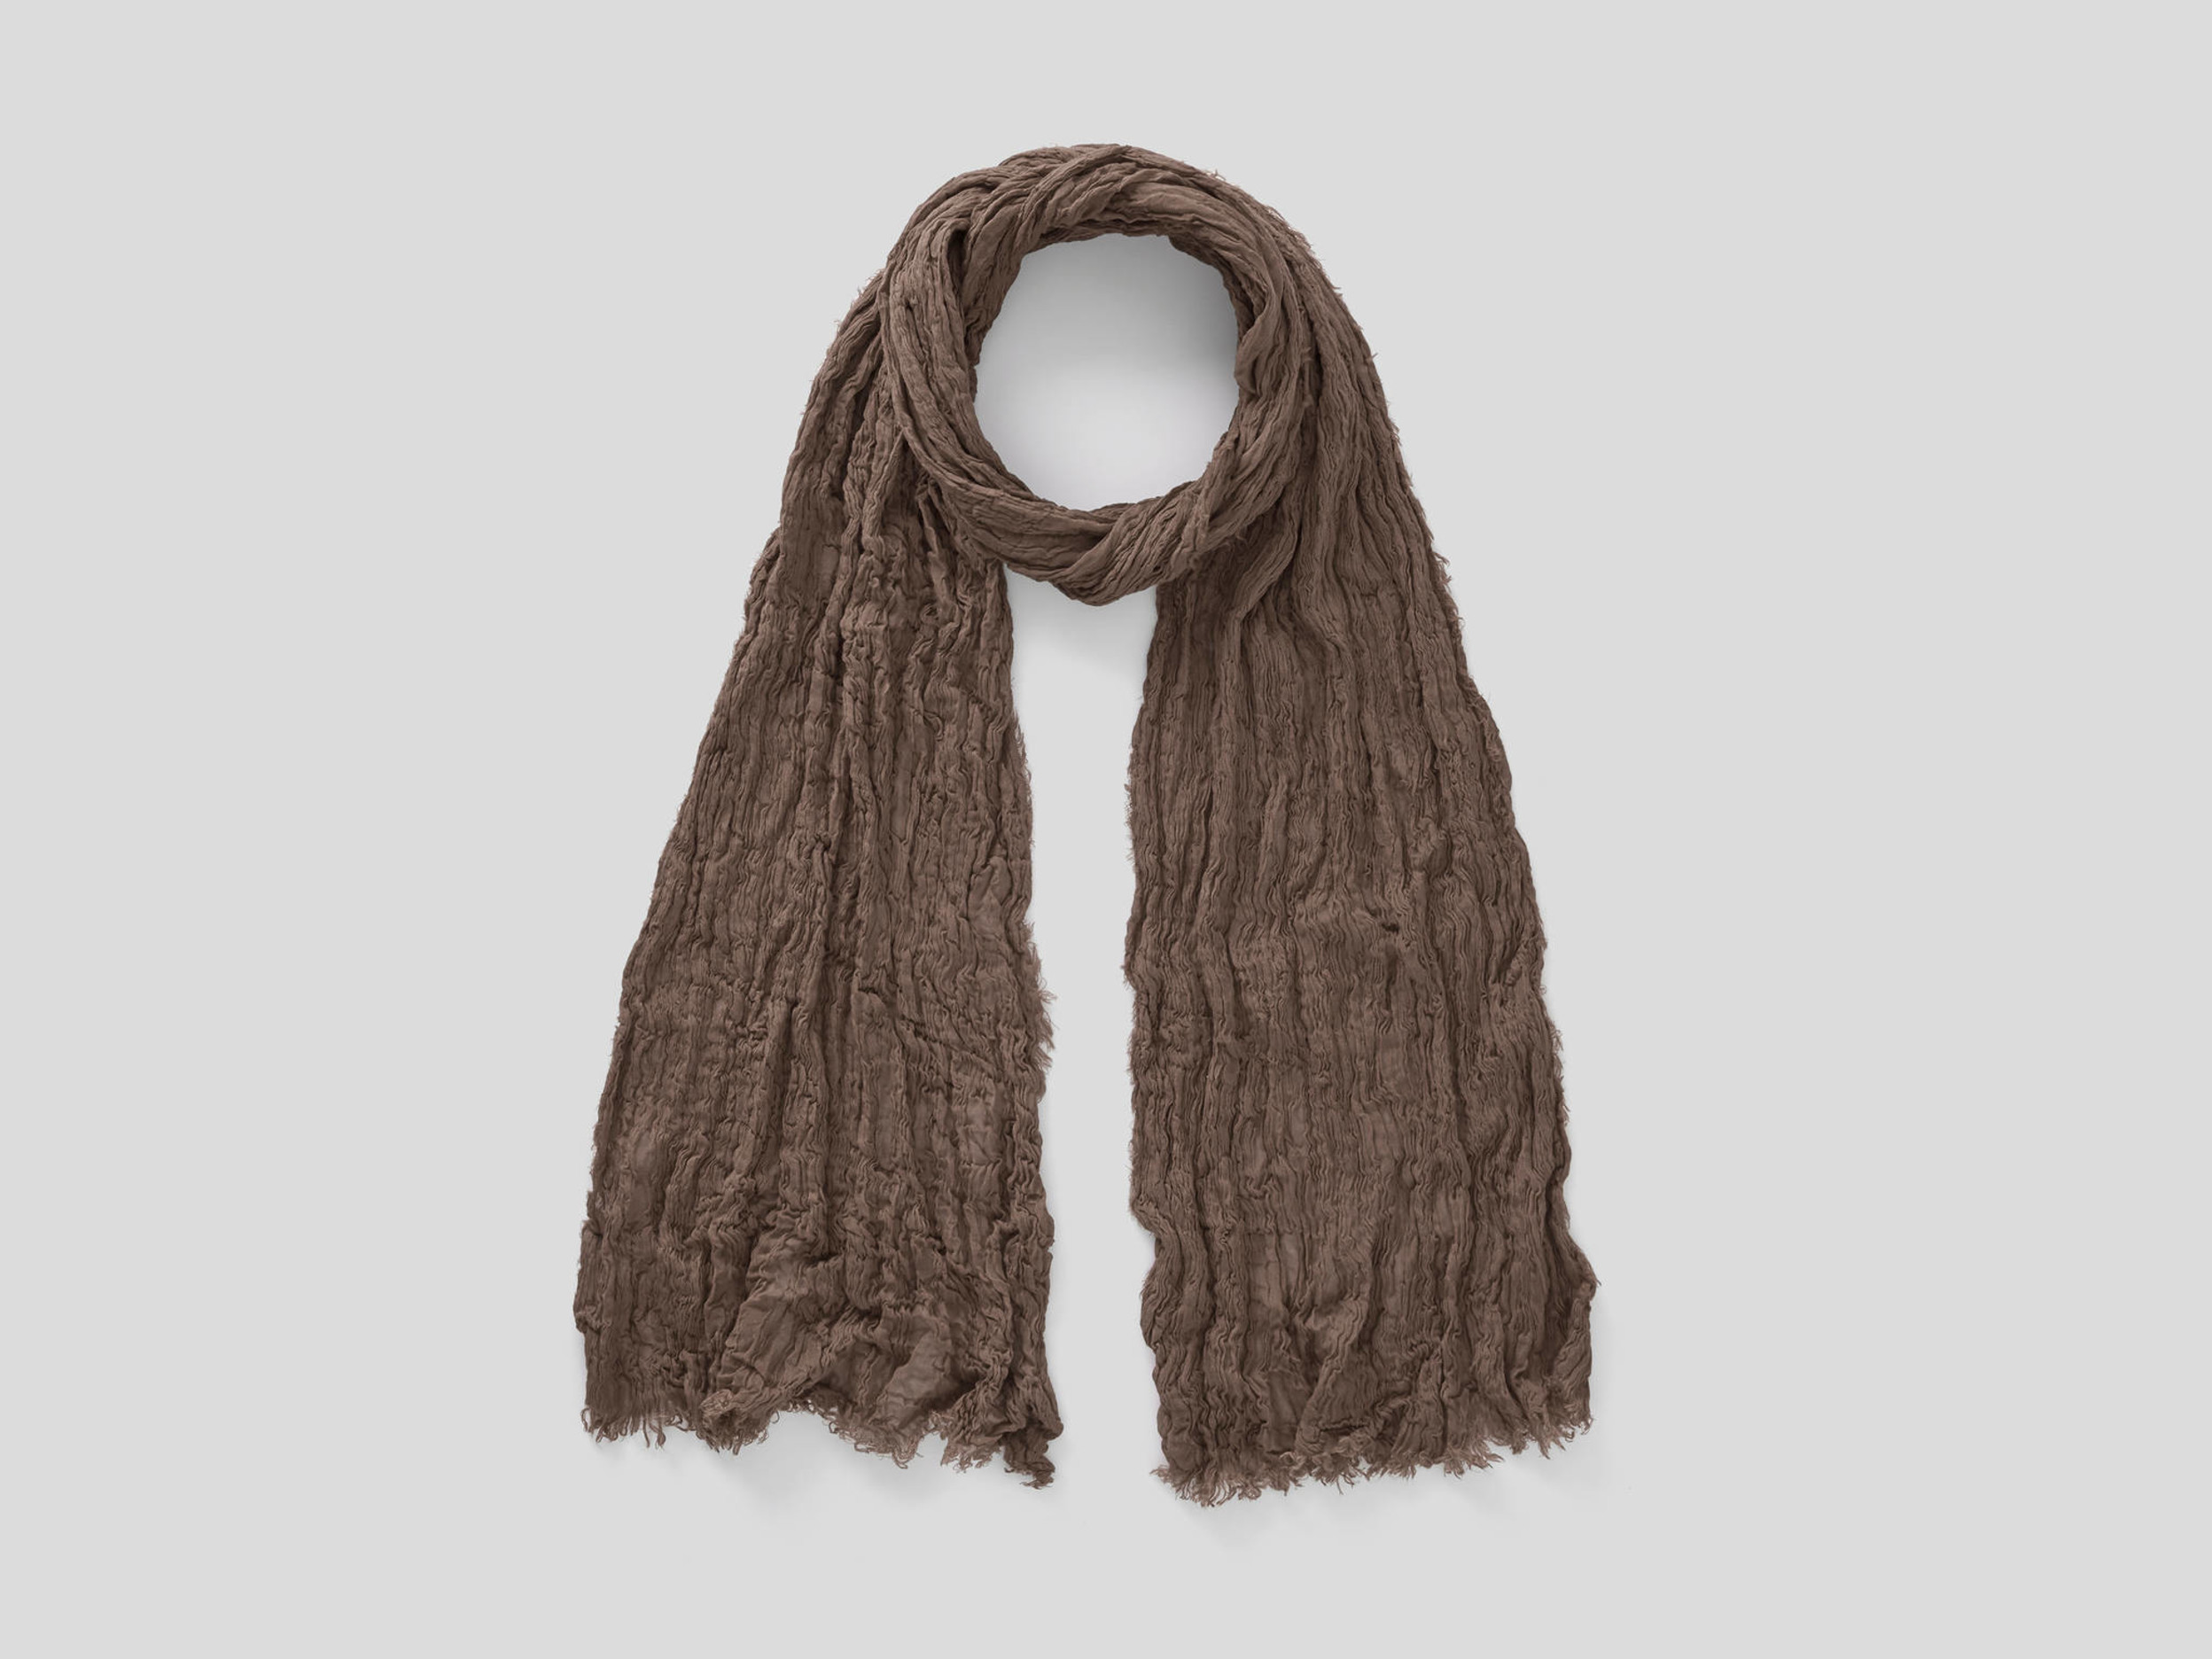 benetton online exclusive, crumpled look scarf, size os, dove gray, women